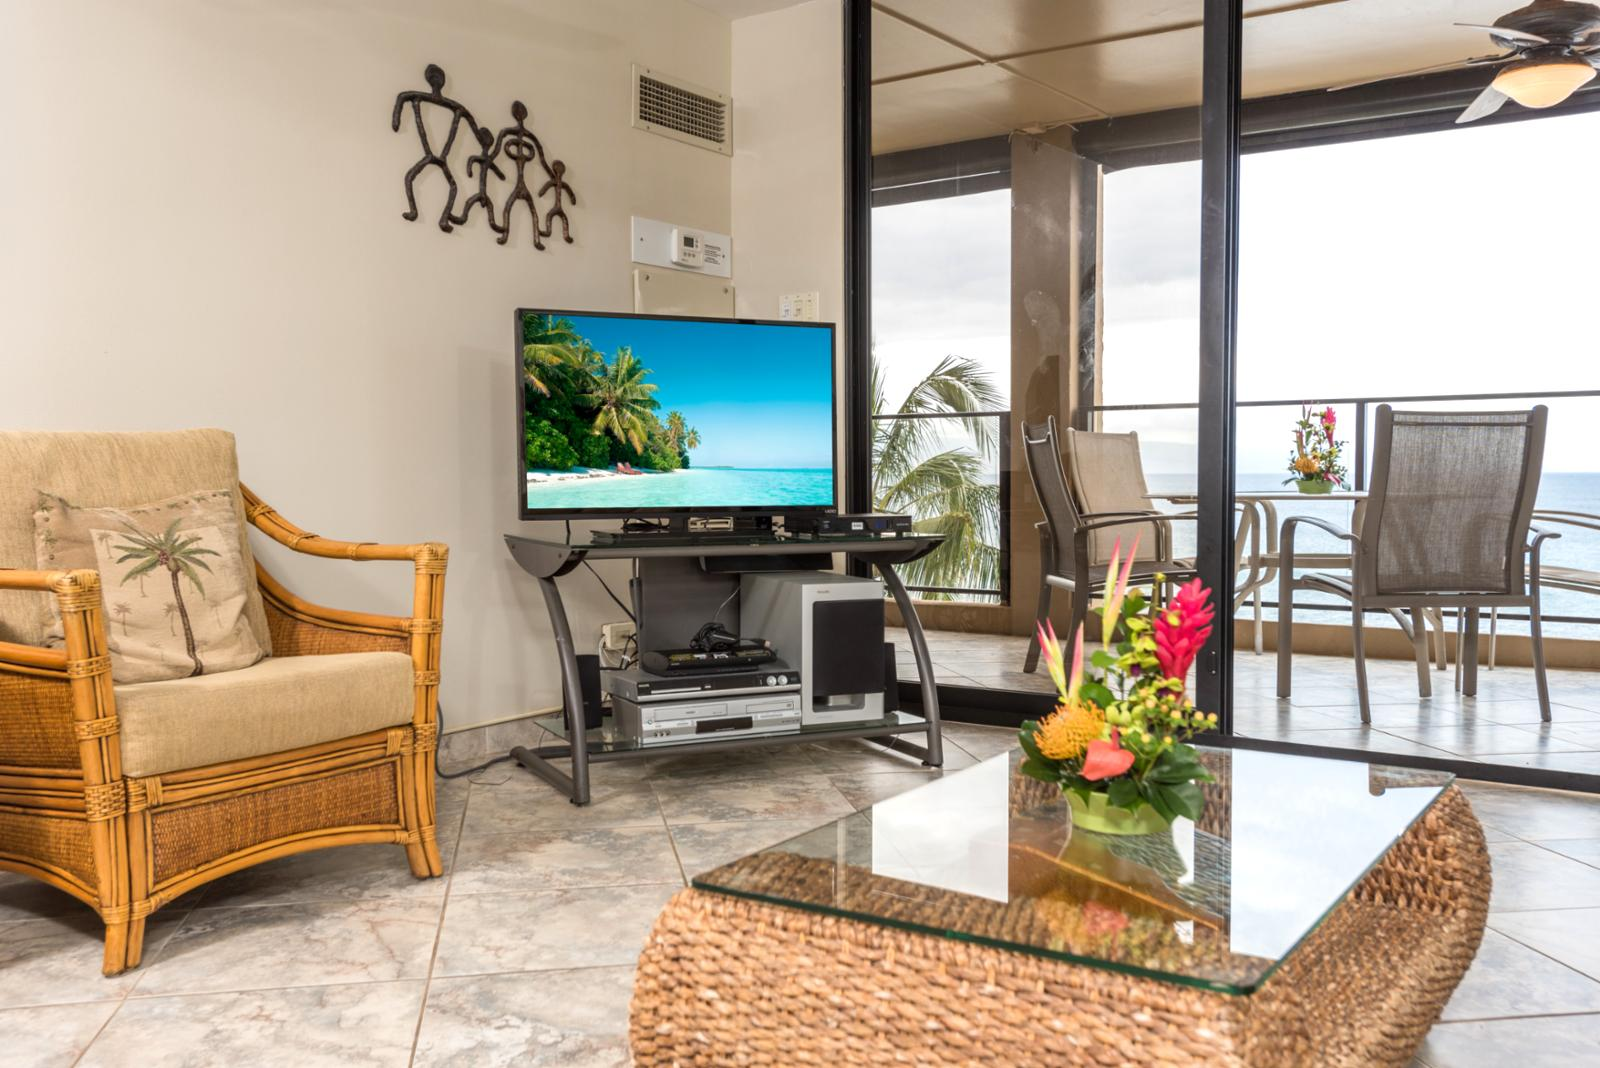 Television and ocean views in the background